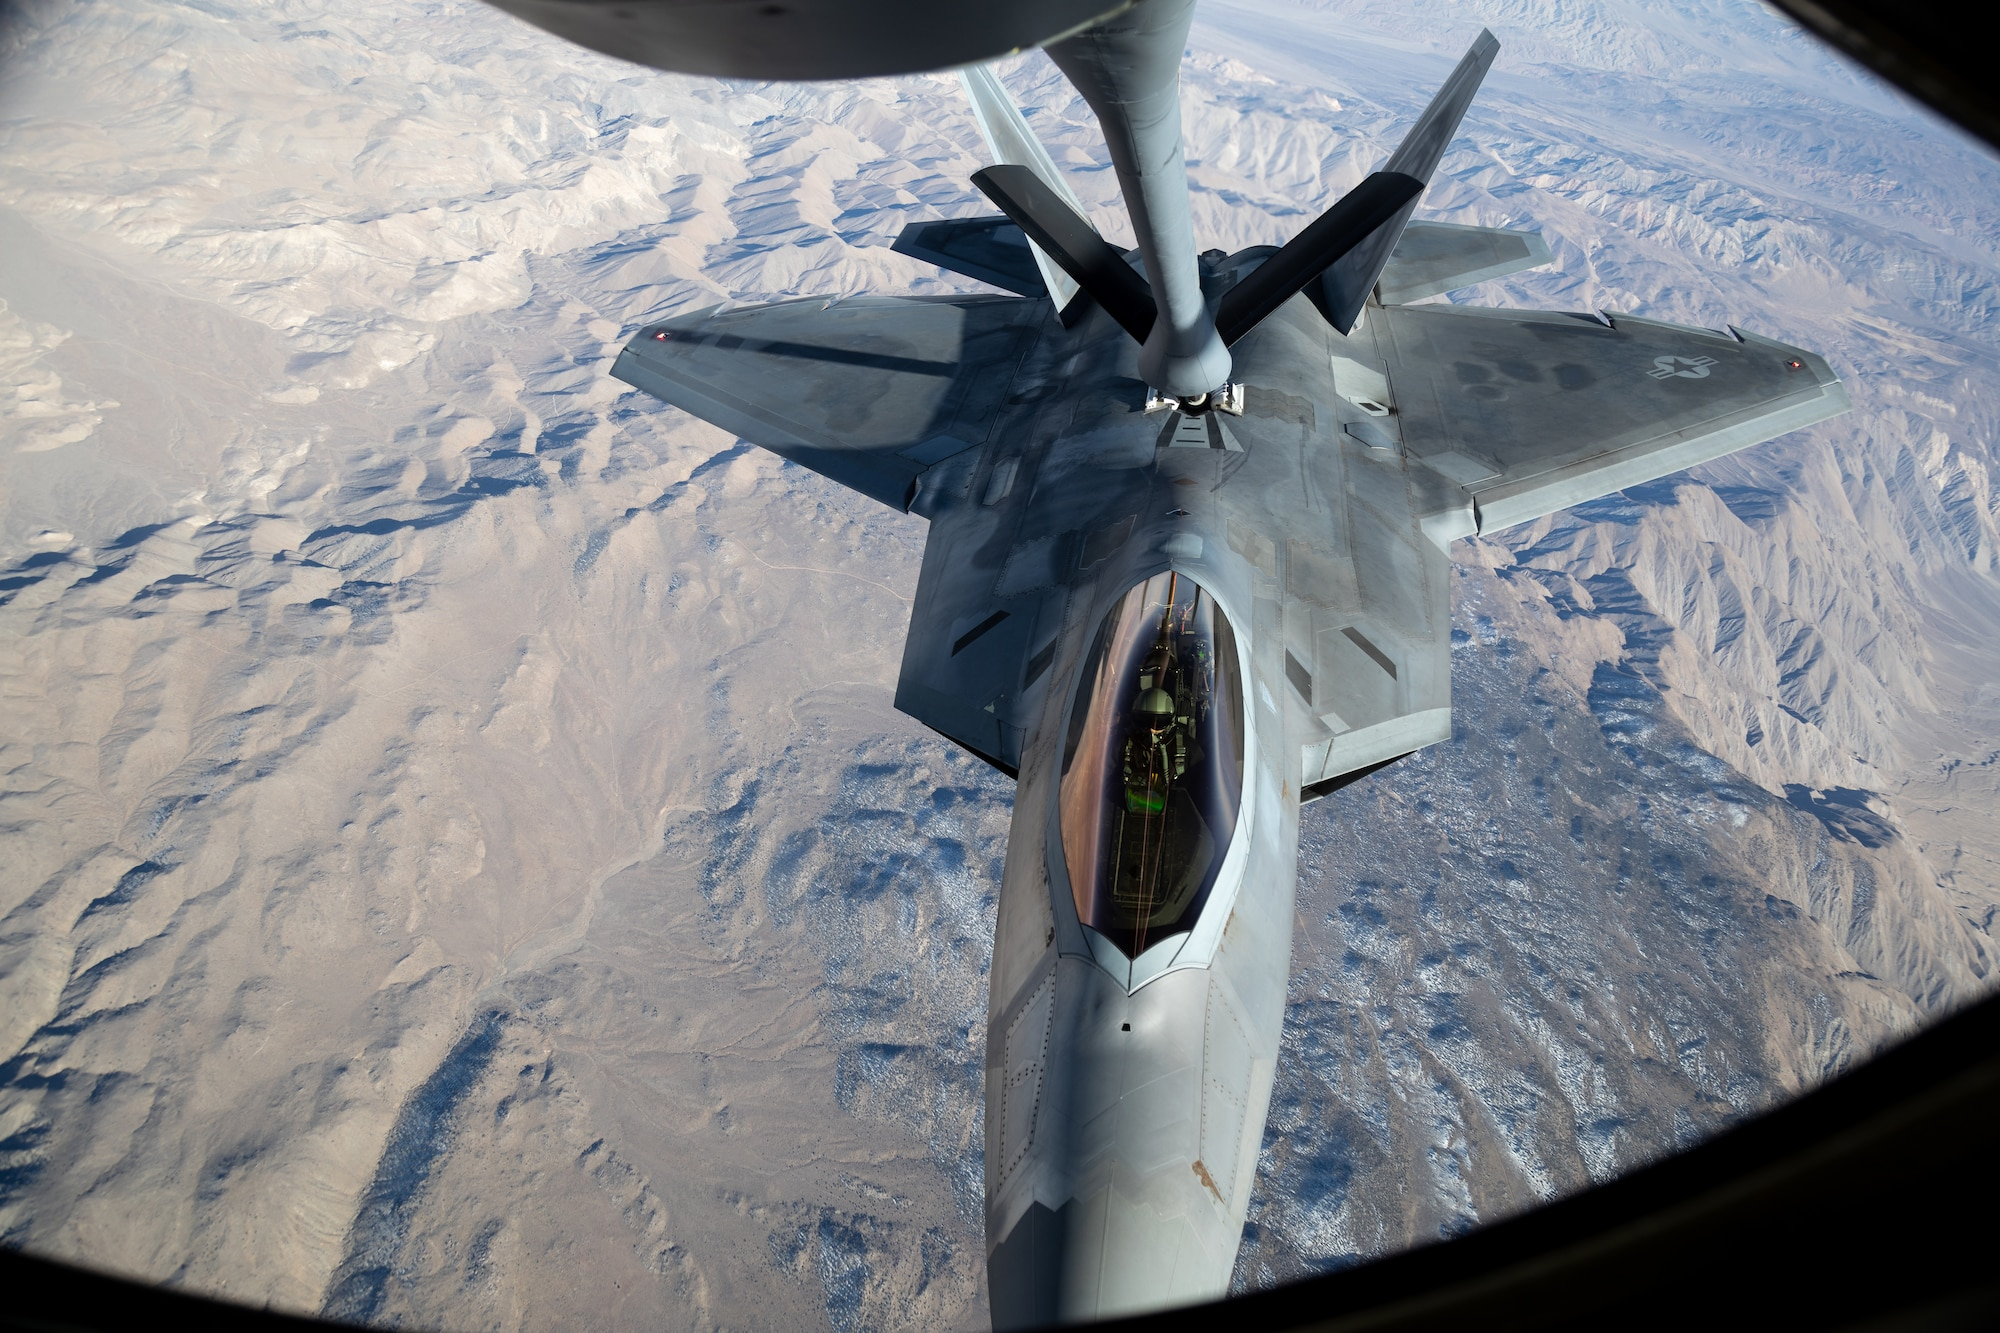 A F-22 Raptor from the 422nd Test and Evaluation Squadron at Nellis Air Force Base, Nevada, refuels during Orange Flag, March 2, 2021. Orange Flag, the large force test event carried out three times annually by Air Force Test Center's 412th Test Wing at Edwards AFB, Calif., combined with the 53rd Wing's Black Flag, brought several firsts for the test community March 2-4.